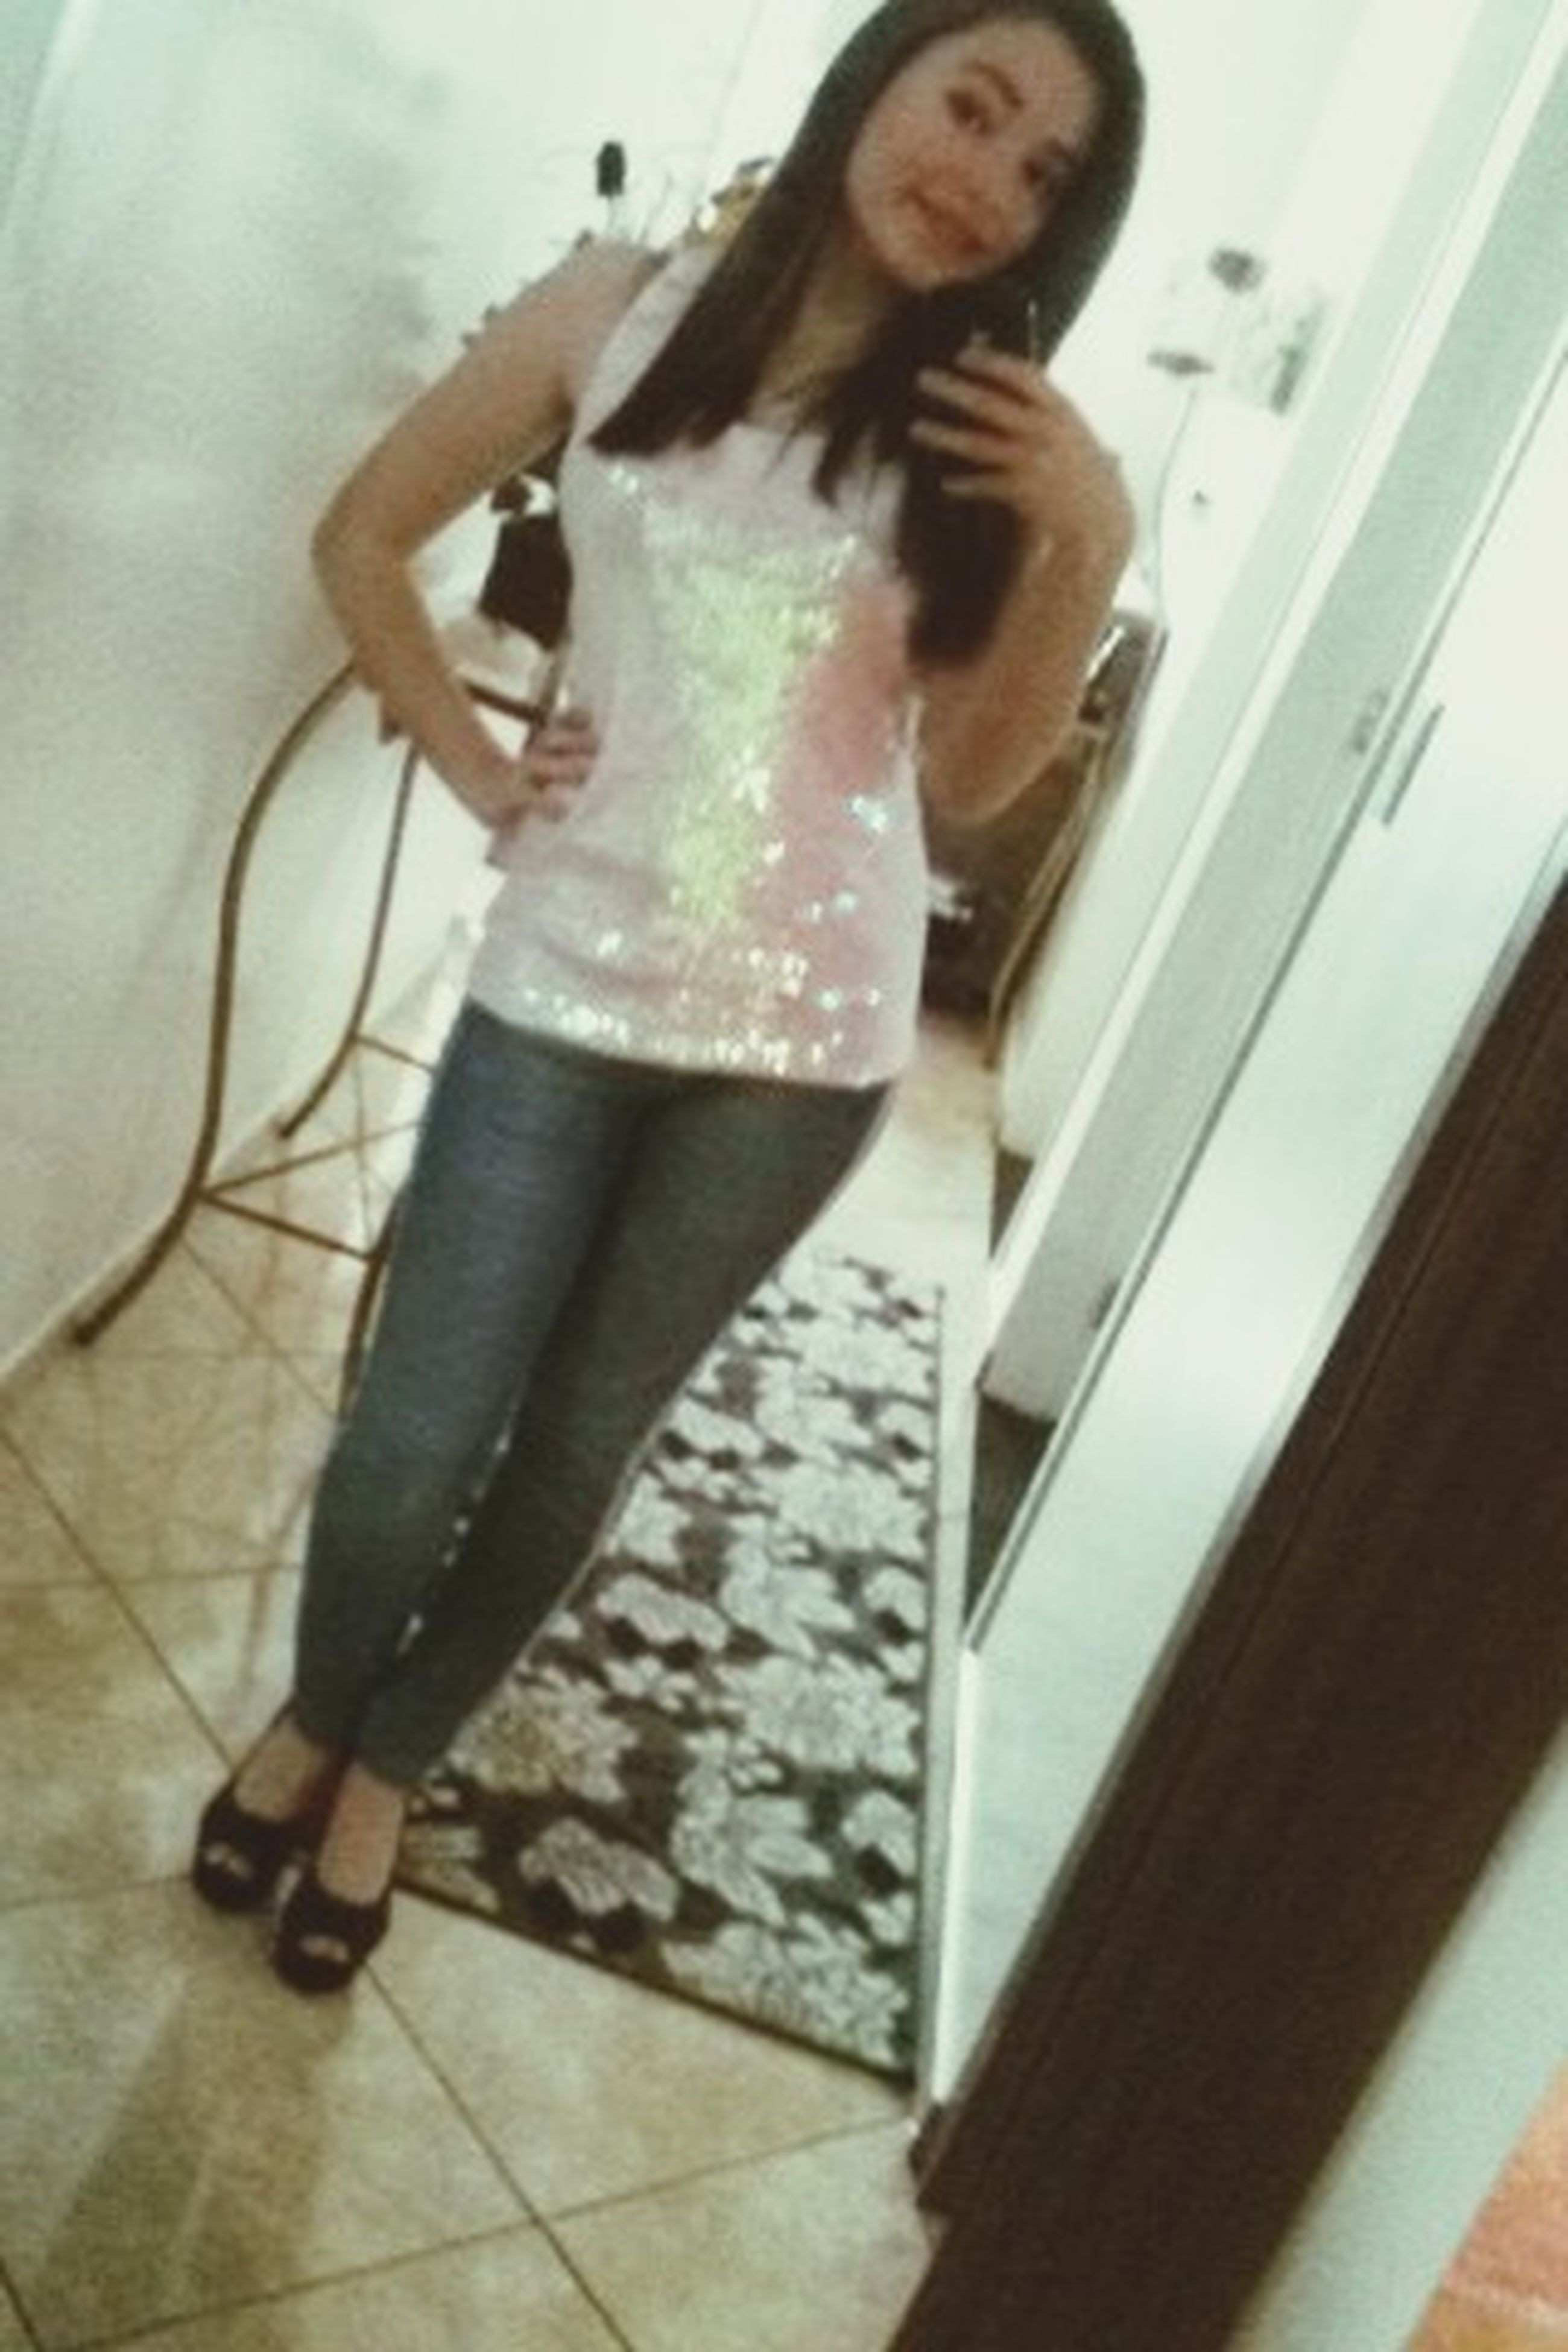 indoors, lifestyles, young adult, person, casual clothing, young women, full length, leisure activity, standing, front view, reflection, three quarter length, home interior, technology, looking at camera, mirror, holding